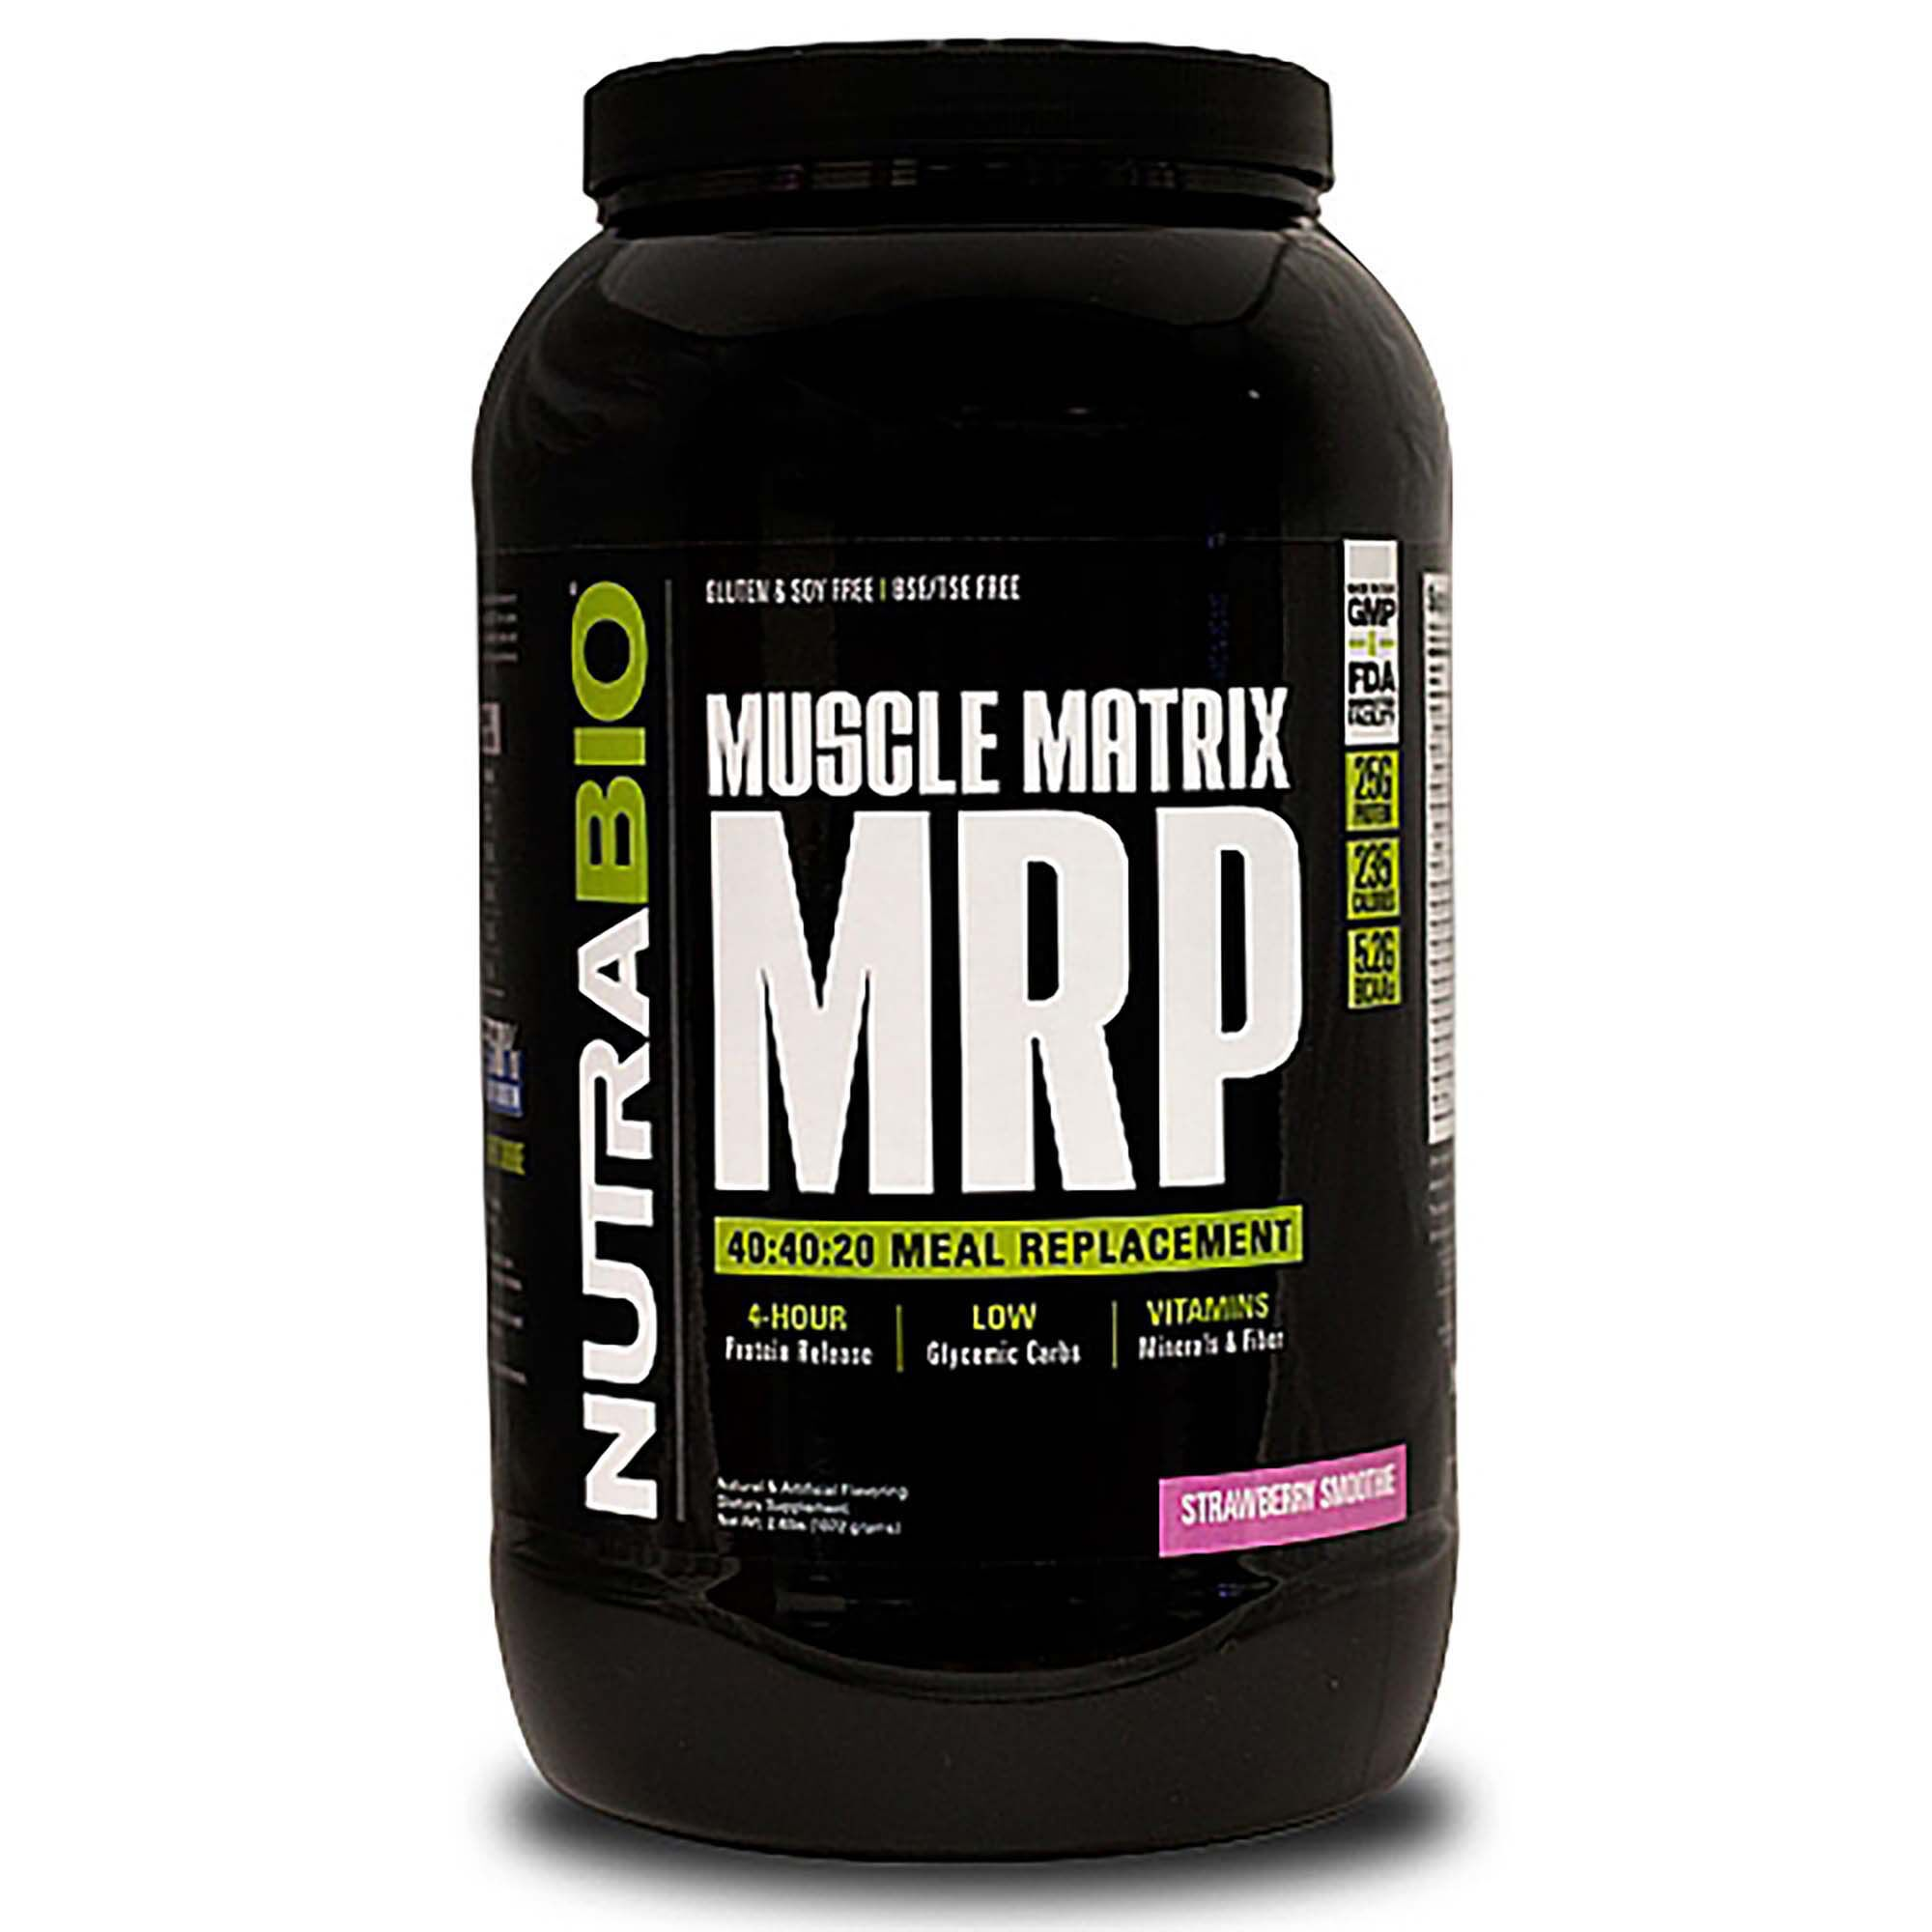 Muscle Matrix Mrp - Strawberry Smoothie - 2 Lb(S) - Nutrabio - Meal Replacement Powders